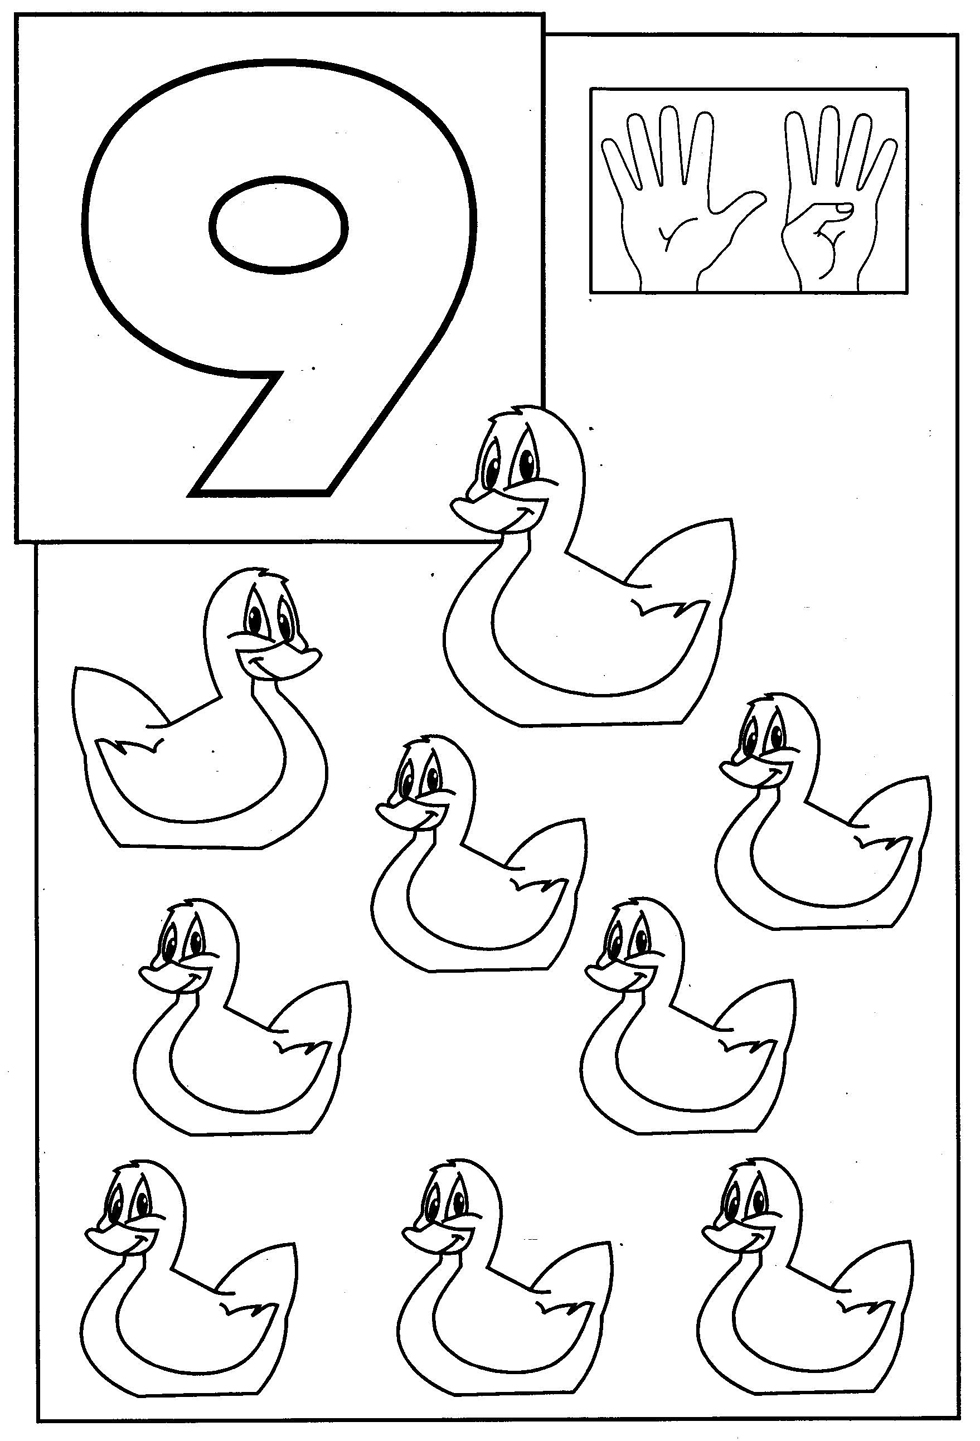 Coloring ~ Stunning Coloring Pages For Kids With Numbers Photo ... | 1441x980